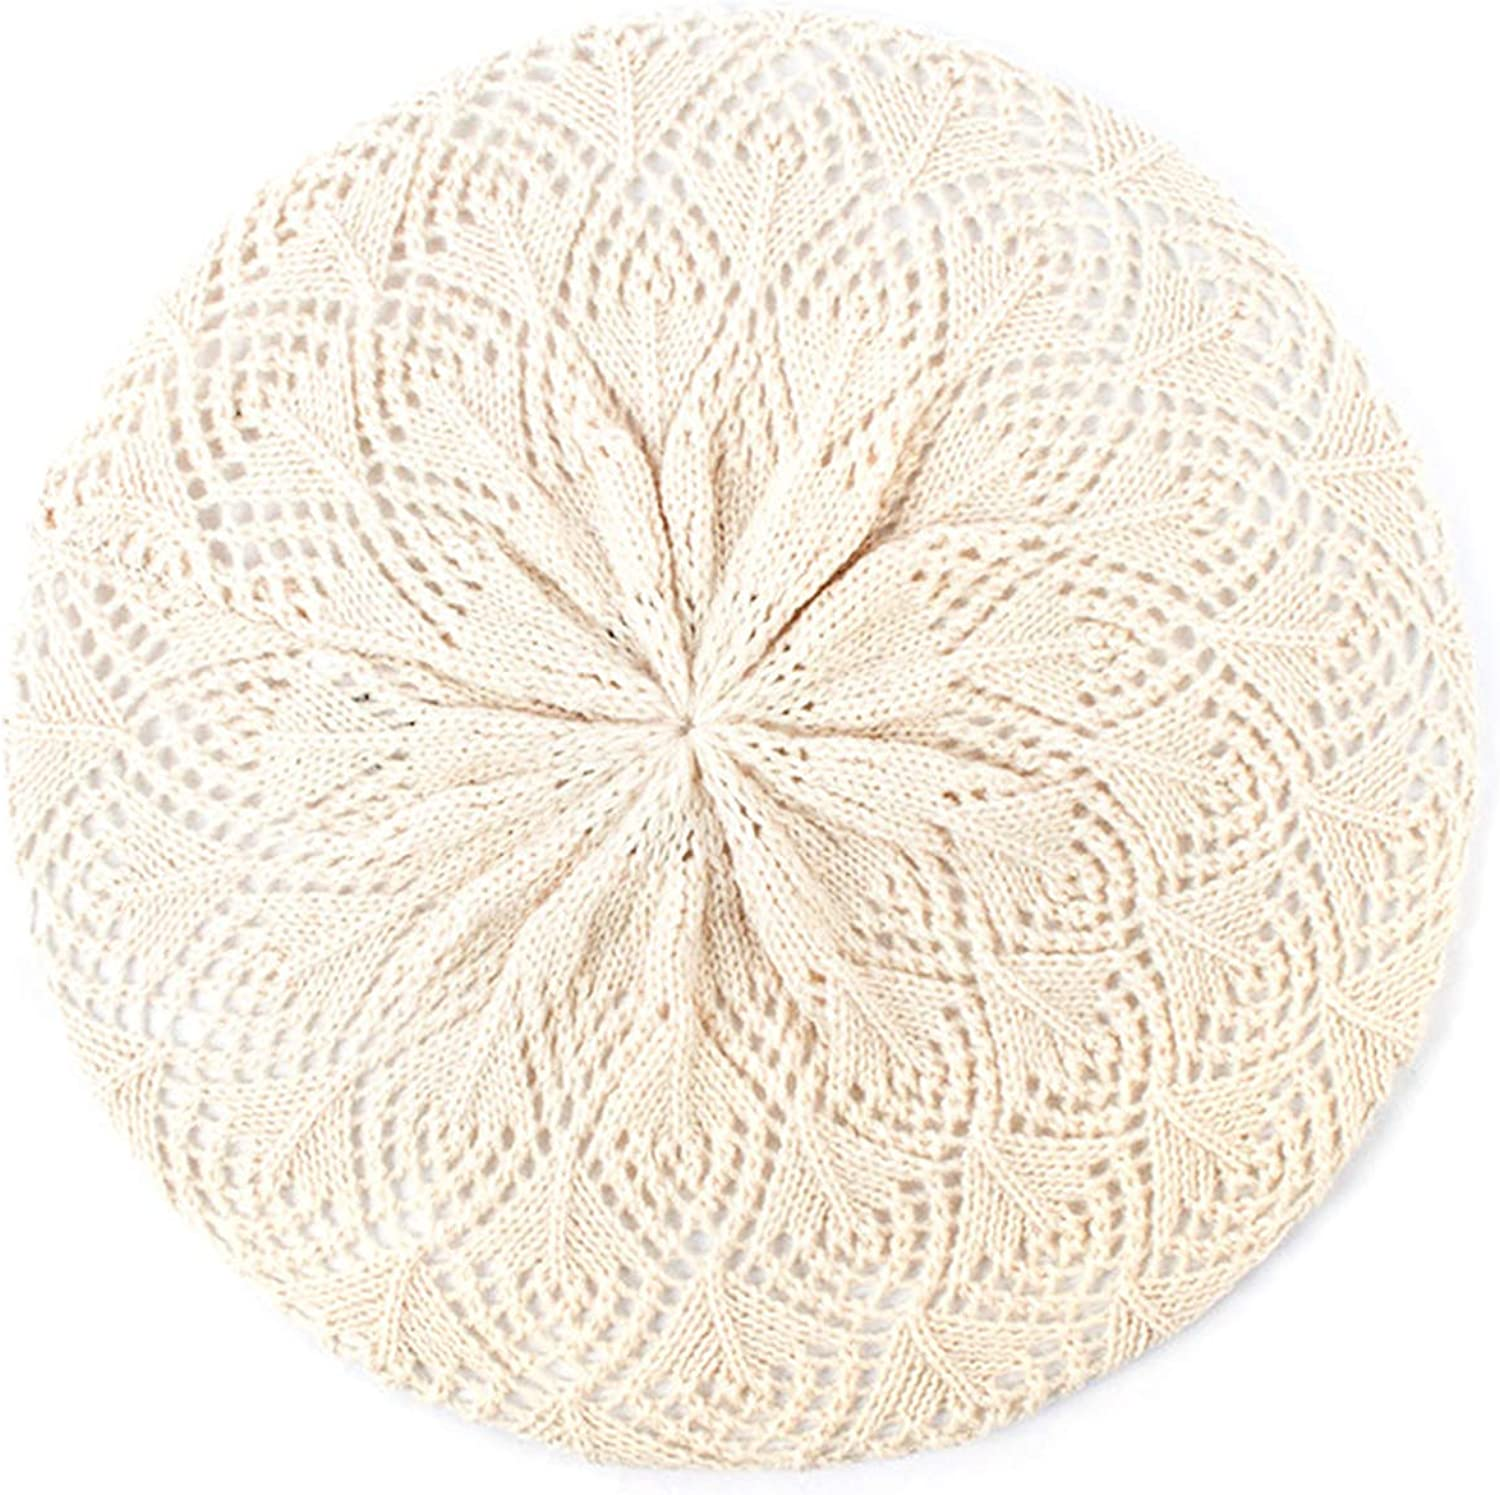 Wilbur Gold Womens Plain Color Knit Beret Hat Thin Acrylic Berets for Women Ladies French Artist Beanie Beret Hats